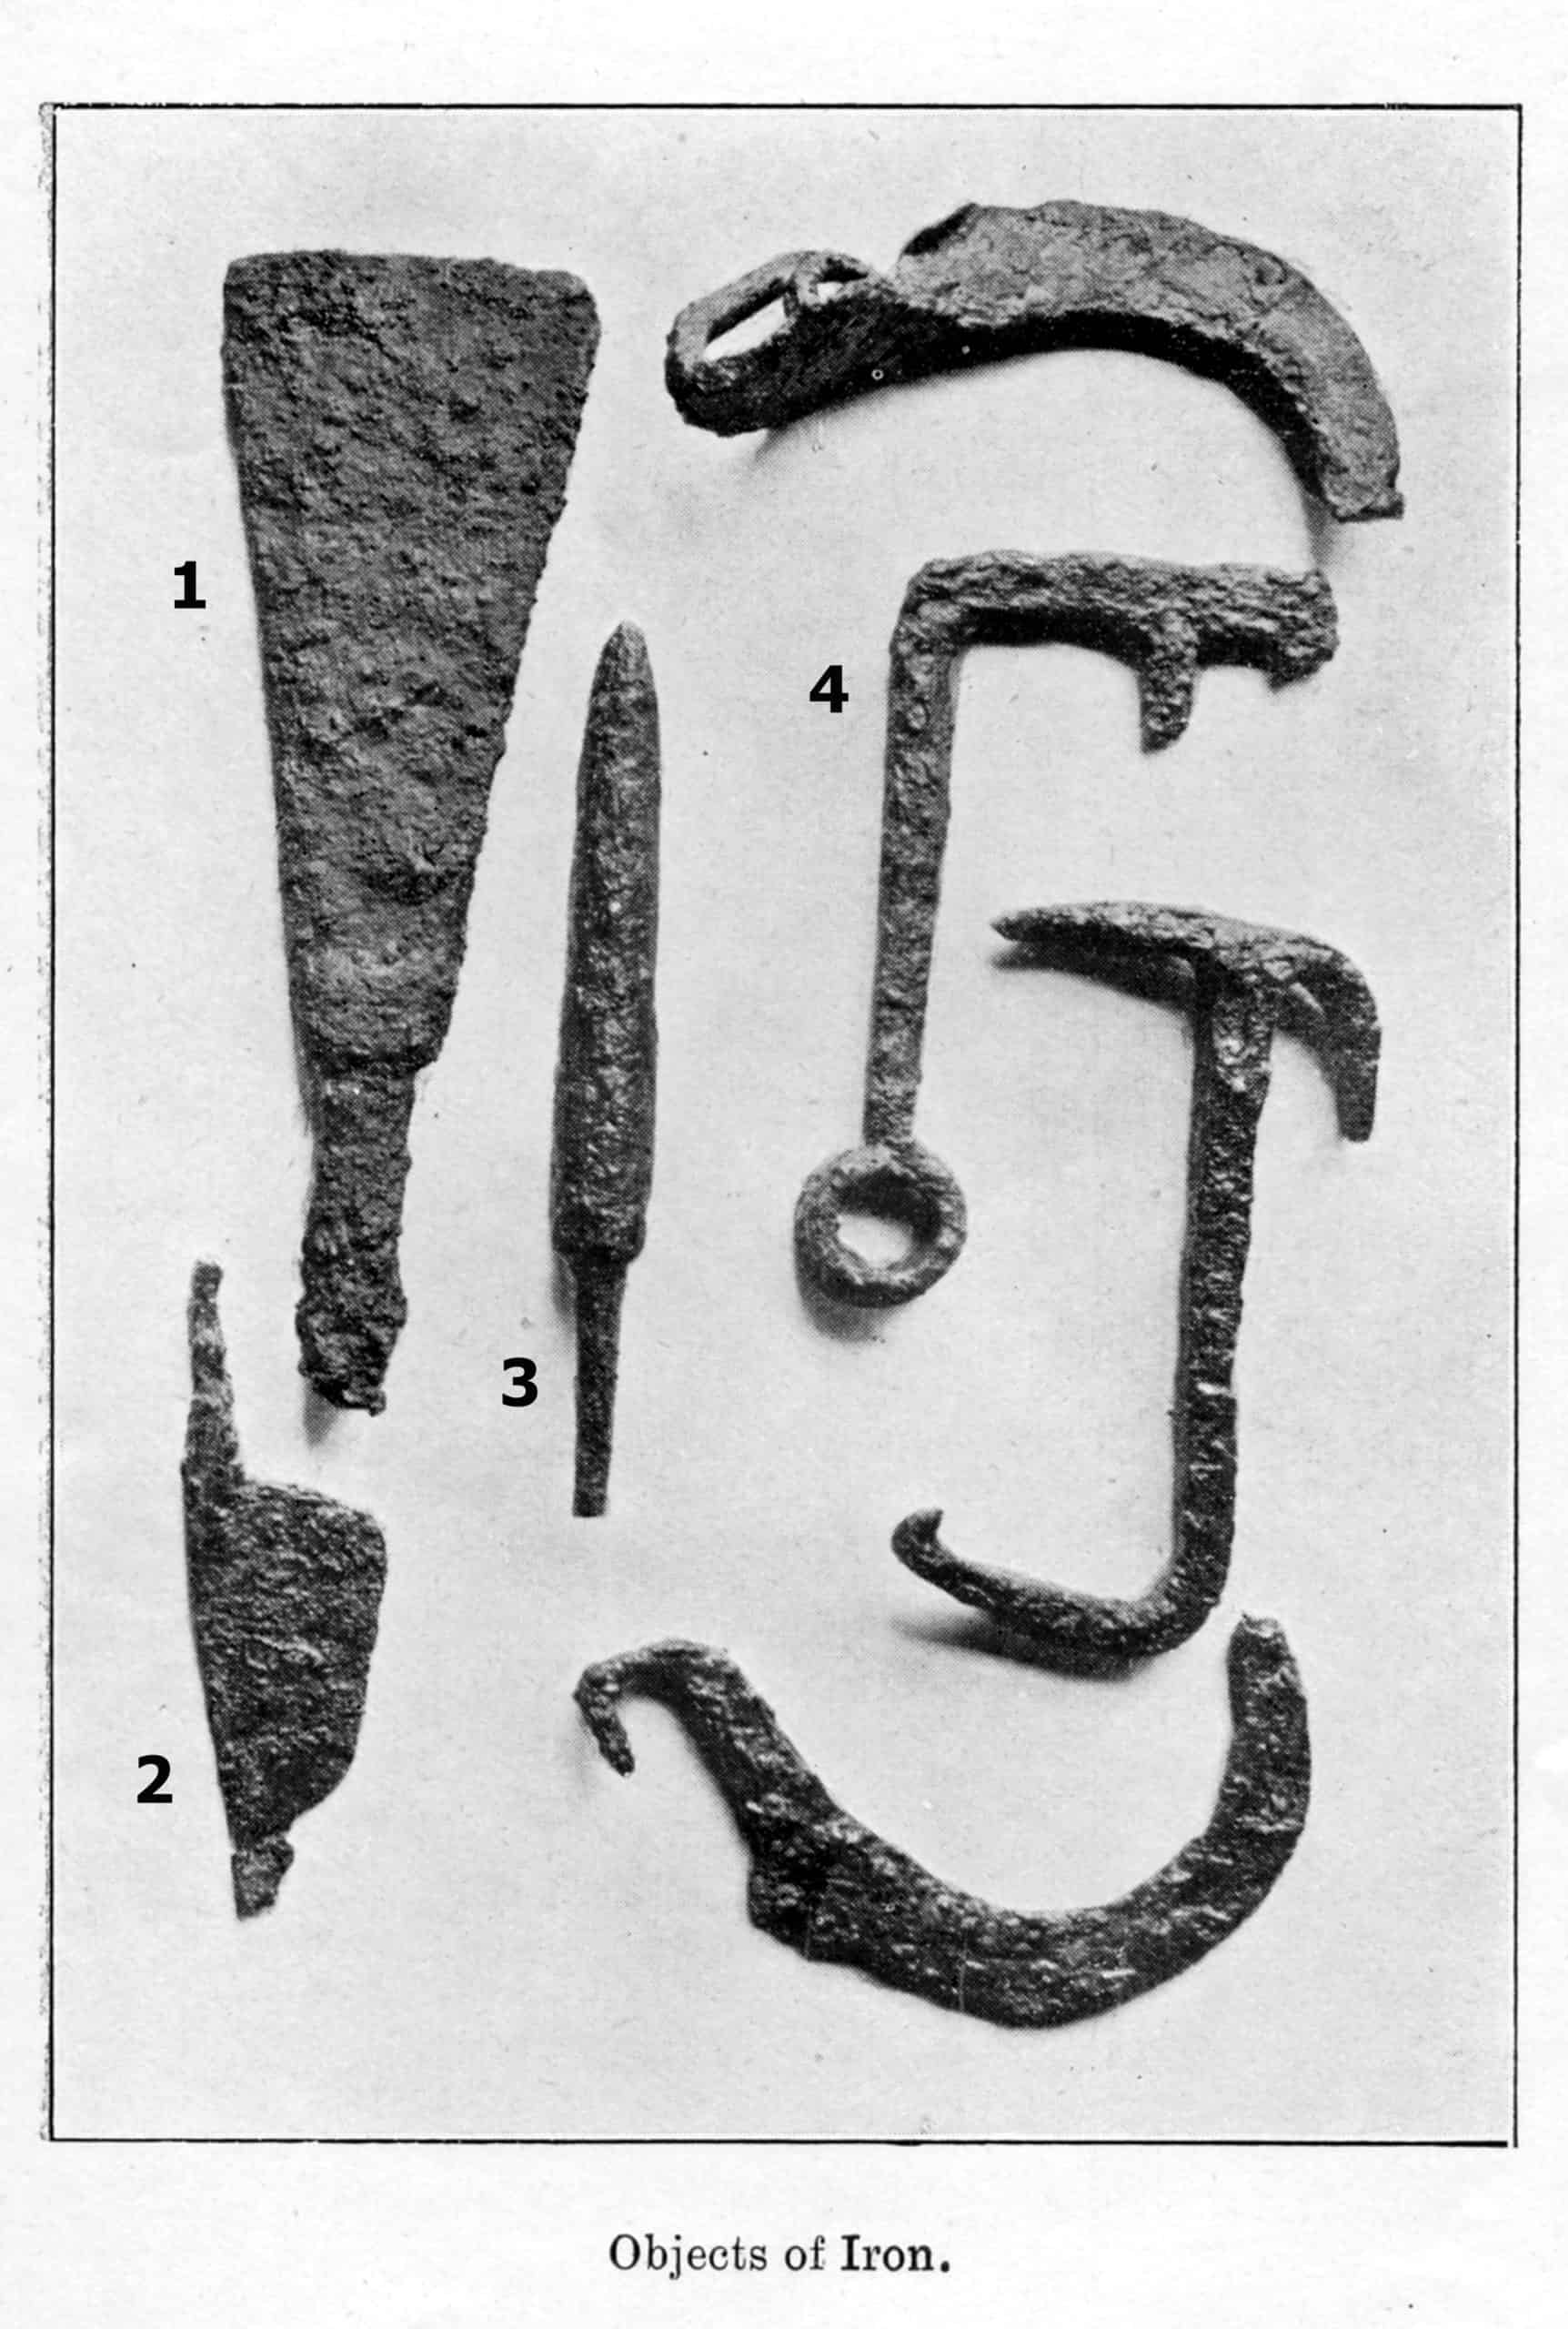 'objects of iron' from s e winbolt's: borough of folkestone'roman villa site, east cliff' notes with numbered plan.